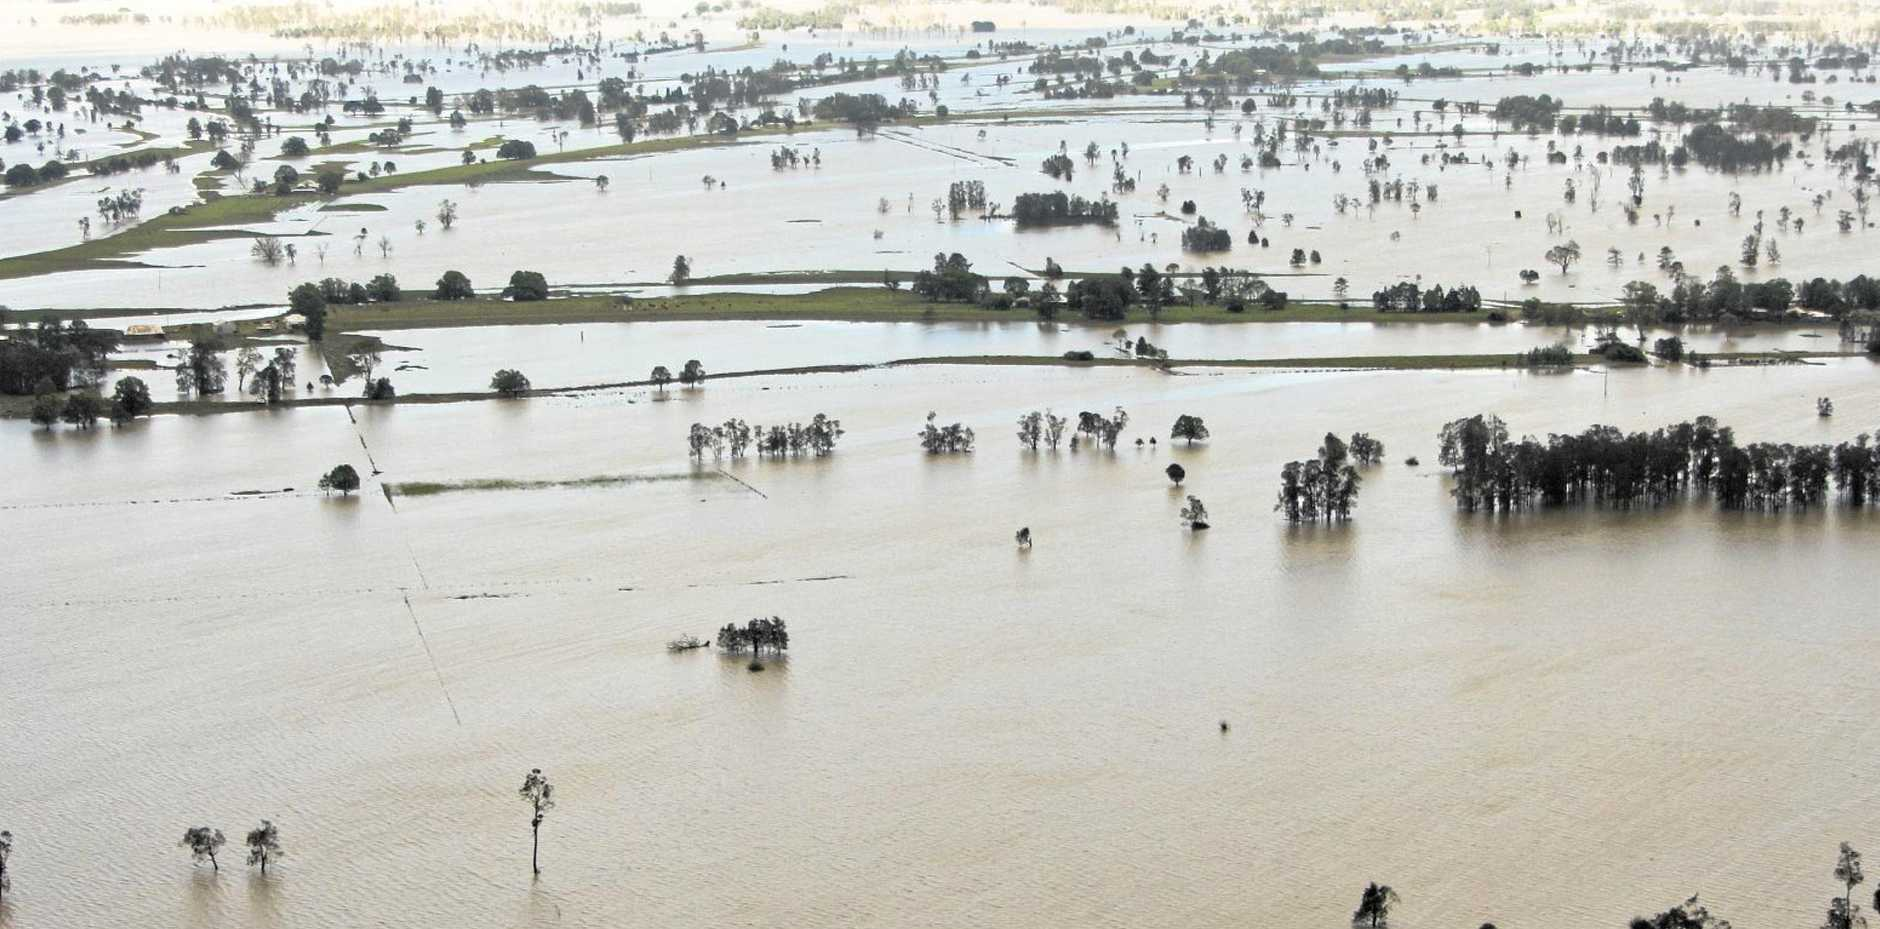 Photo from The Daily Examiner in January 2013, showing the Clarence River in flood.